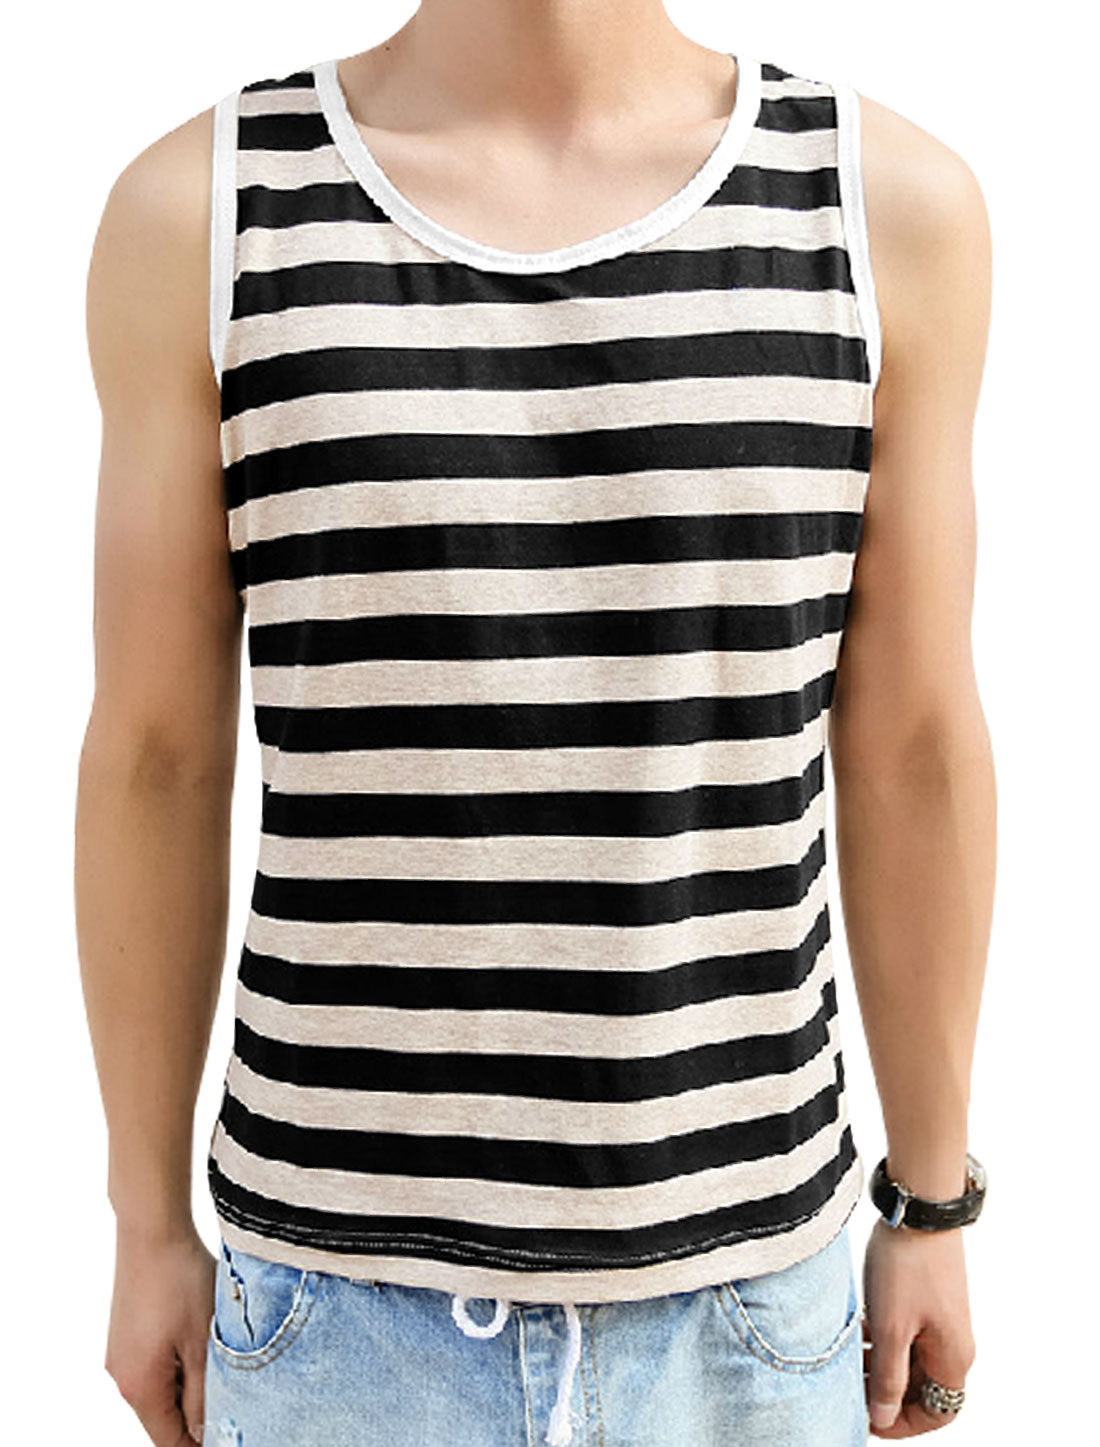 Men Soft Pullover Stripes Pattern Piped Detail Tank Top Black Khaki M